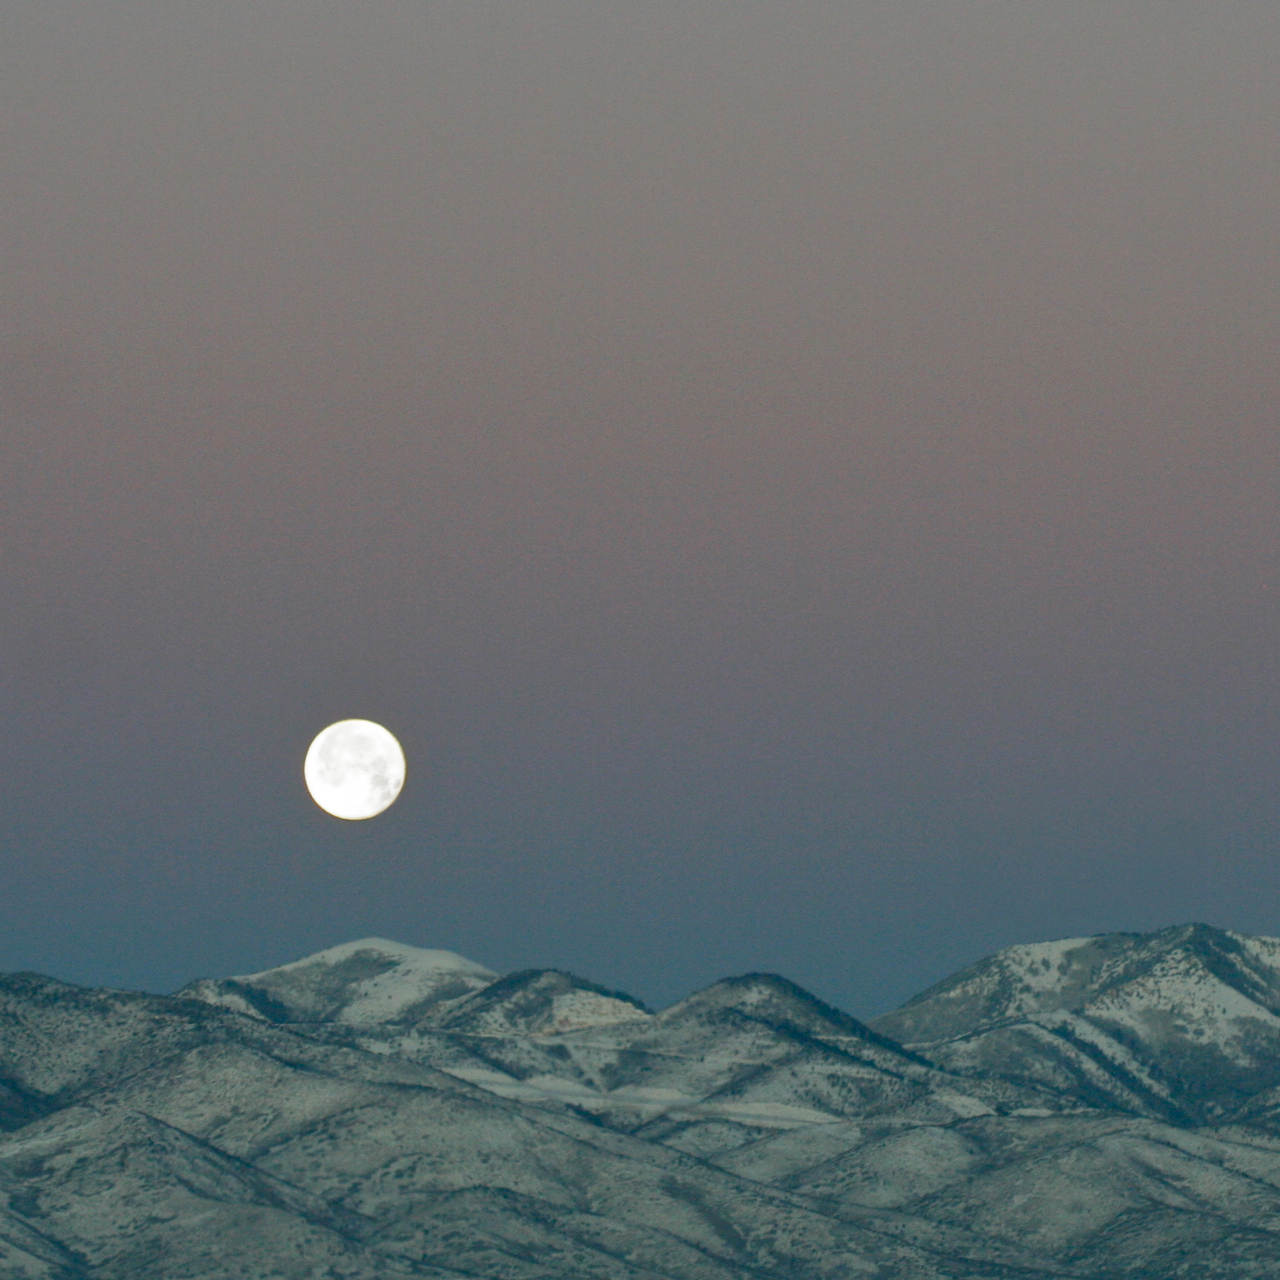 full moon rising over mountains in a purple sky